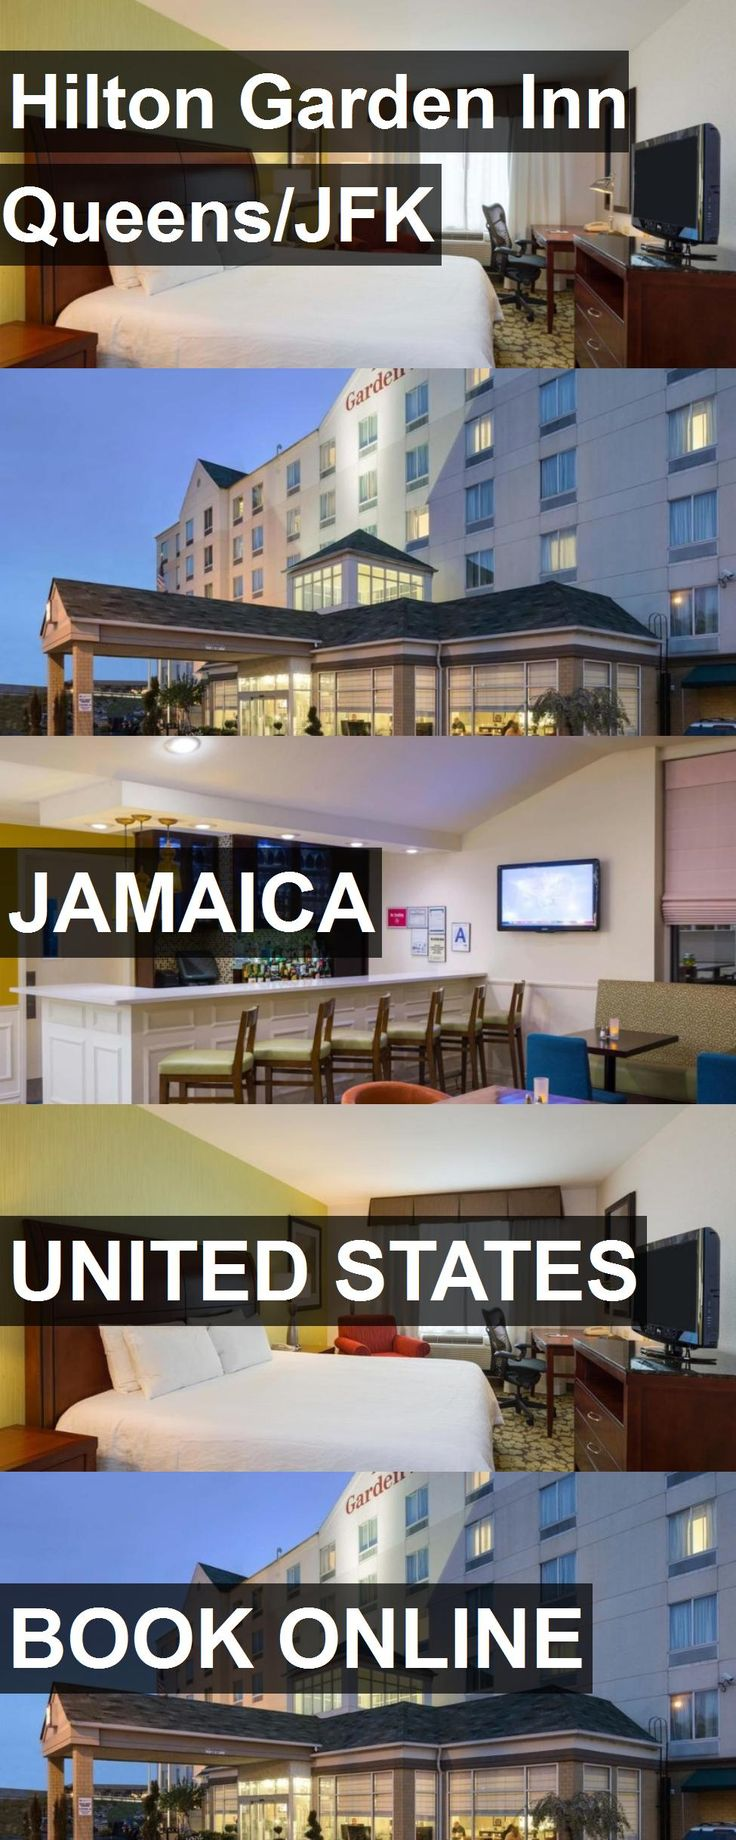 Hotel Hilton Garden Inn Queens/JFK in Jamaica, United States. For more information, photos, reviews and best prices please follow the link. #UnitedStates #Jamaica #HiltonGardenInnQueens/JFK #hotel #travel #vacation